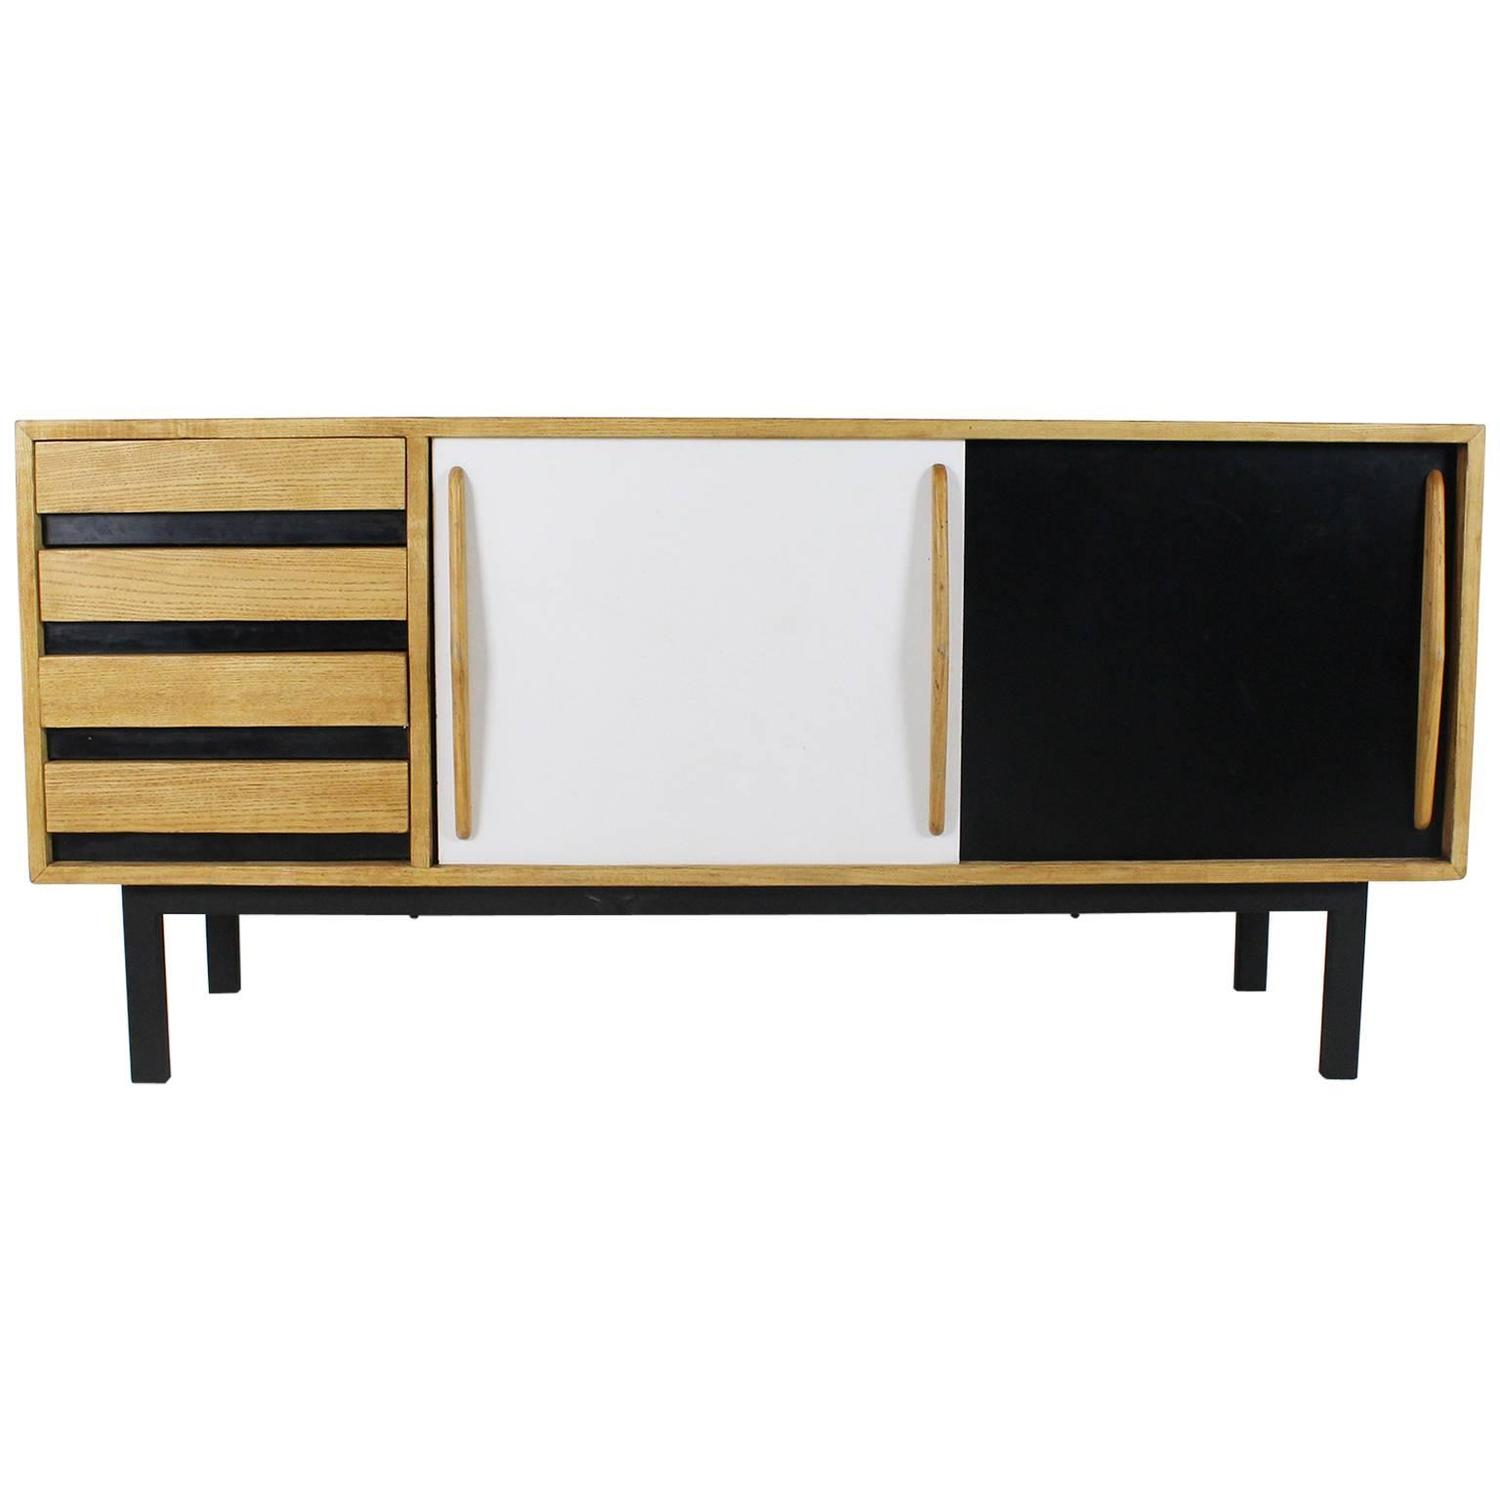 Sideboard By Charlotte Perriand Cansado Model For Steph Simon 1958 For Sale At 1stdibs